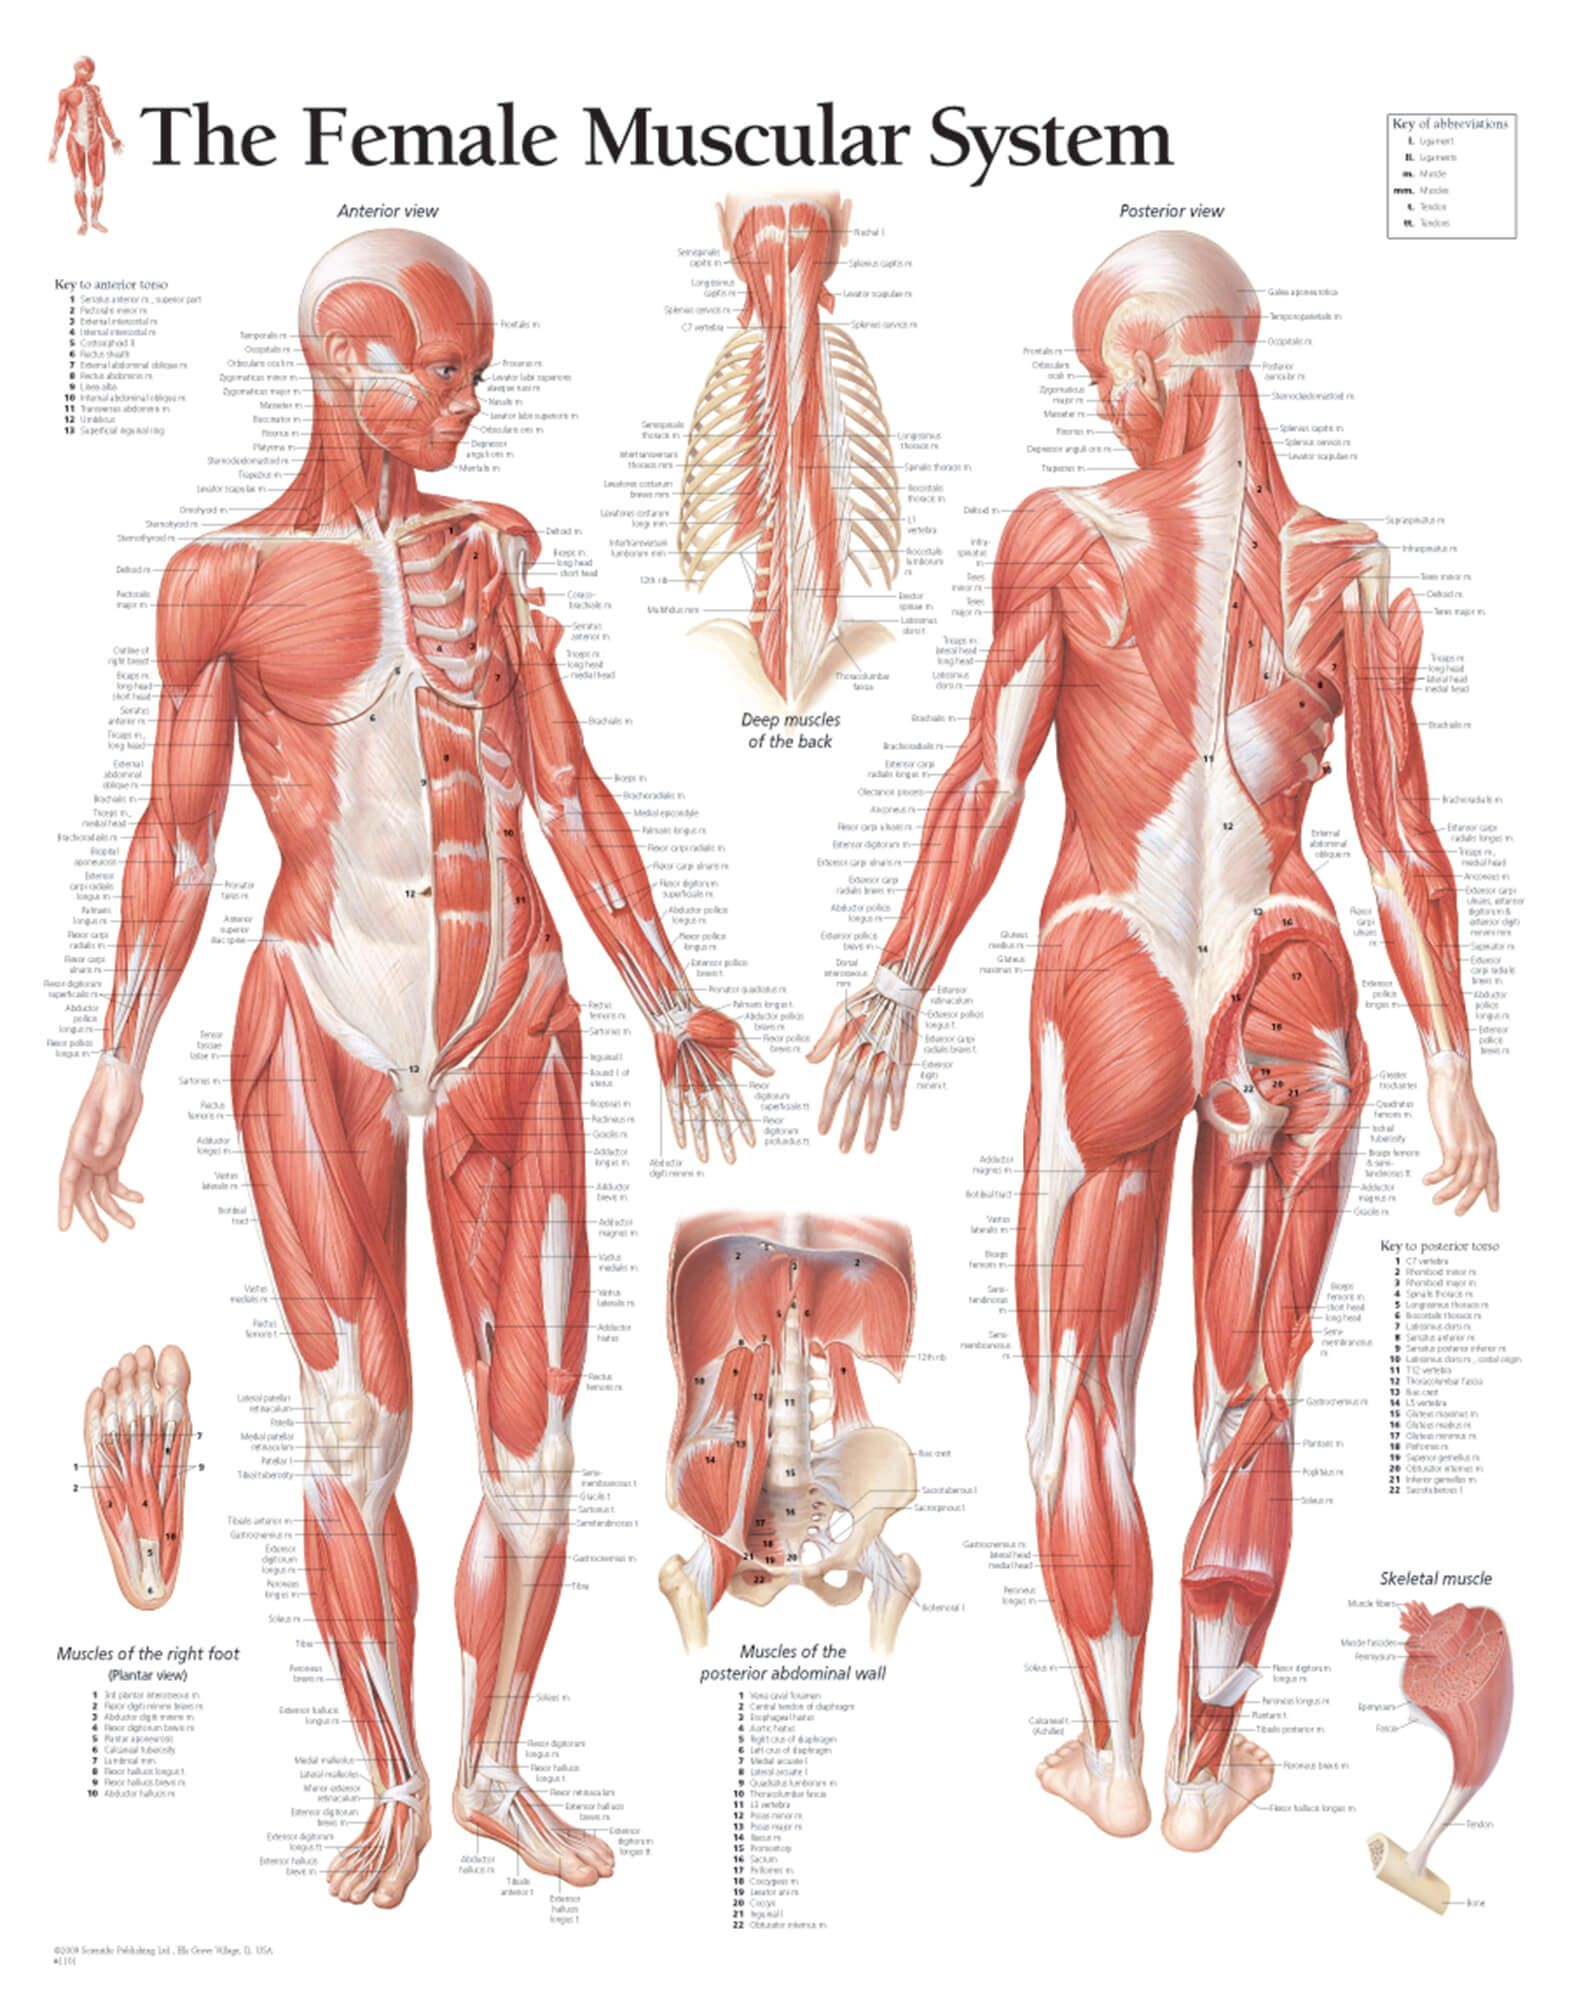 The Female Muscular System Chart Graphically Portrays Front And Rear